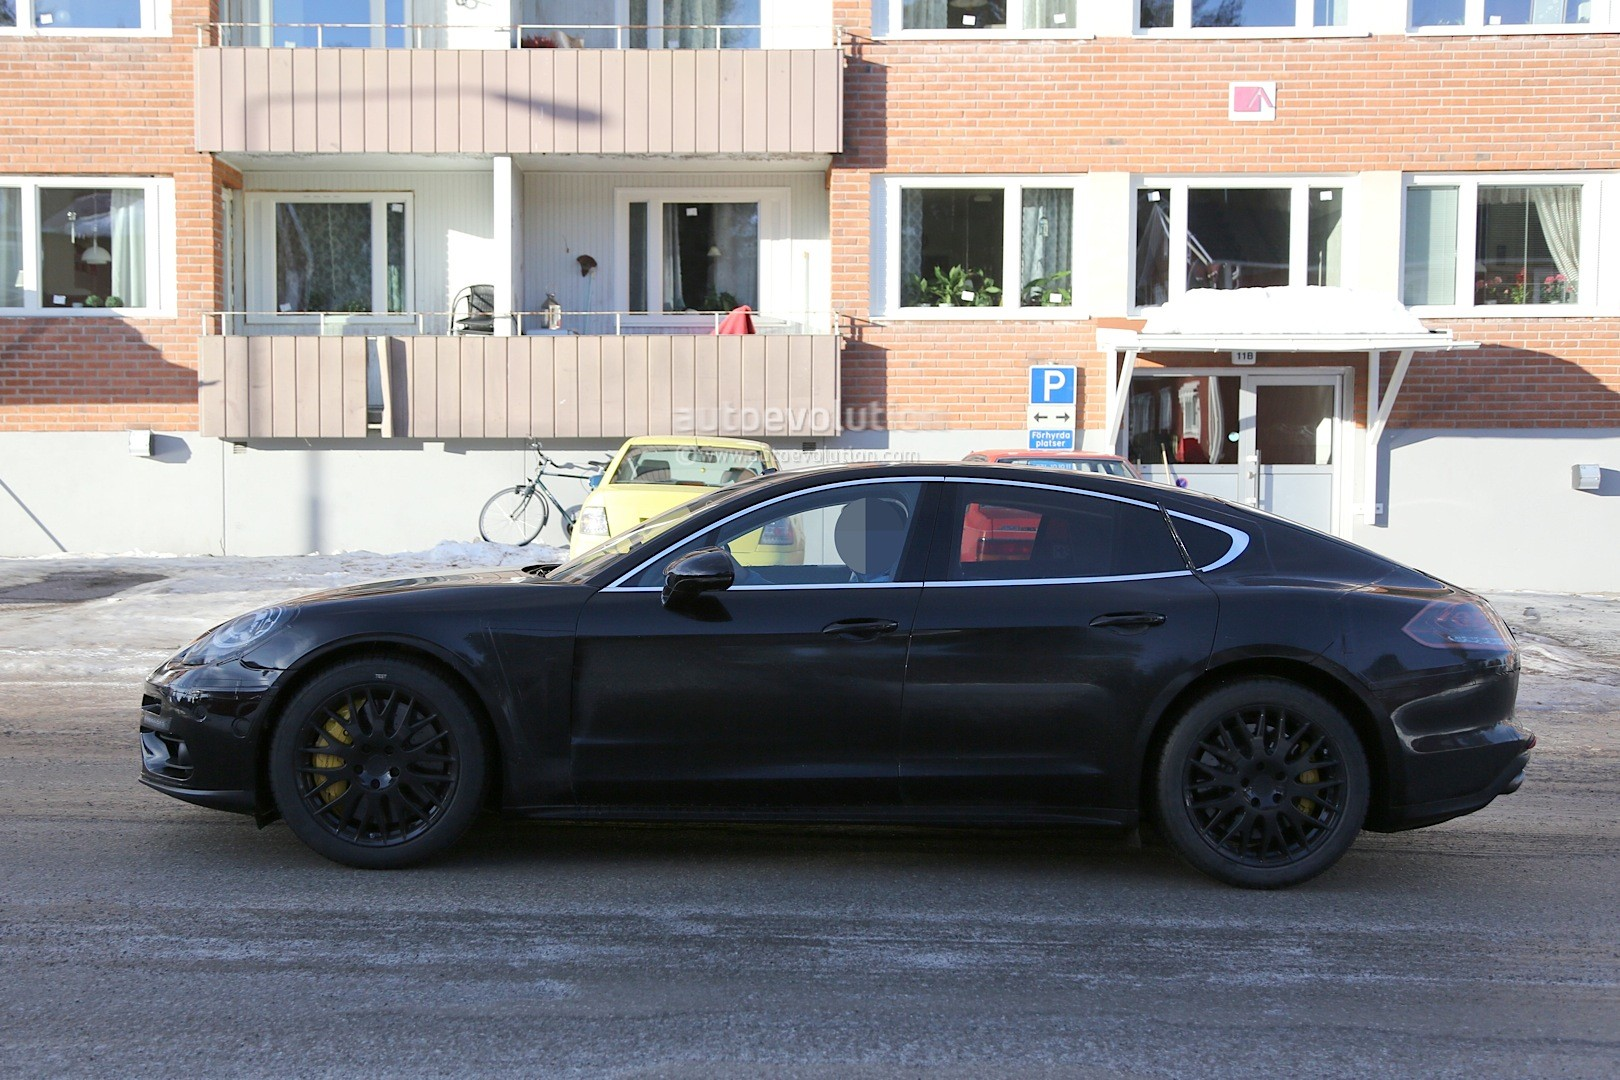 Spyshots 2017 Porsche Panamera First Interior Photos Show Big Changes 92583 furthermore AGVhdGluZyBhbmQgY29vbGluZyBsb2dvcw as well Service Request 3 as well How A Radiator Works Diagram further sandpiperenergysolutions. on heating and cooling icons